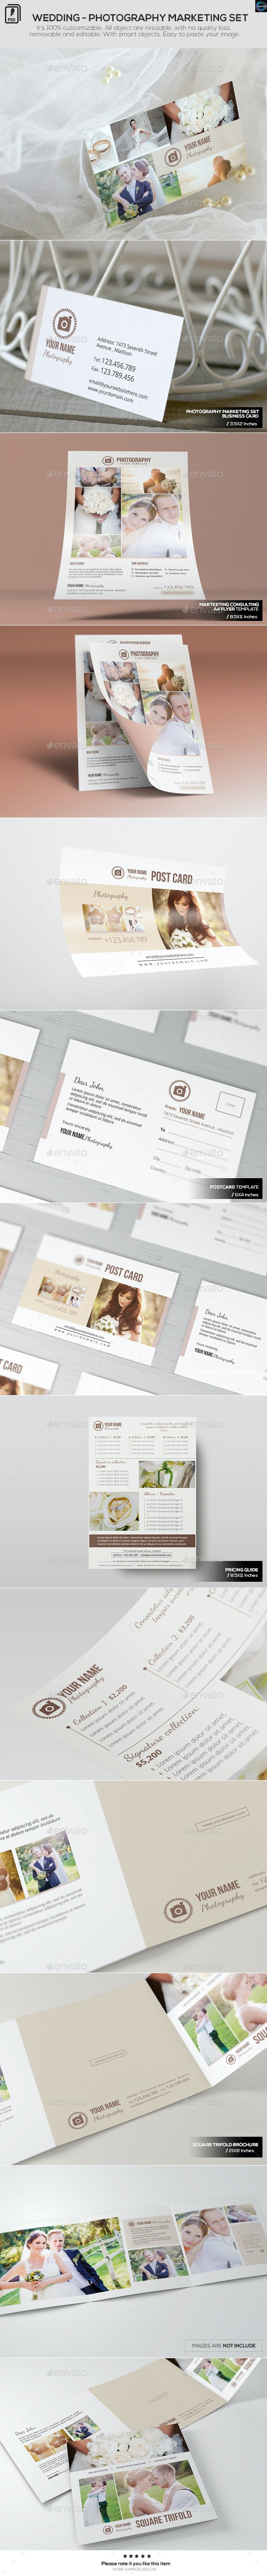 Wedding-Photography Marketing Set - Miscellaneous Print Templates